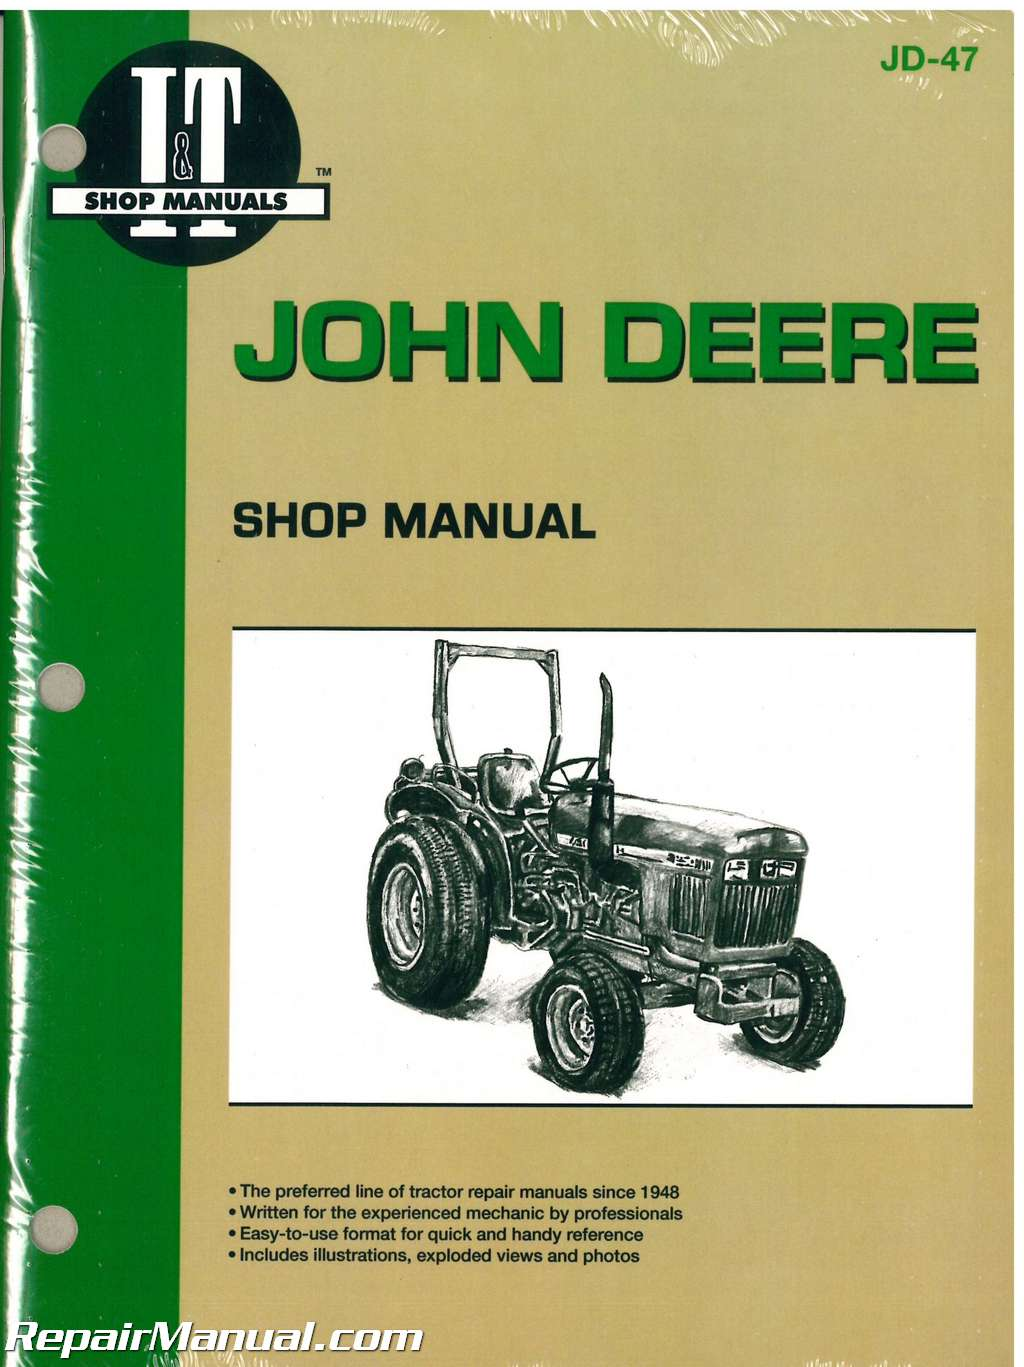 john deere 850 950 1050 farm tractor workshop manual rh repairmanual com